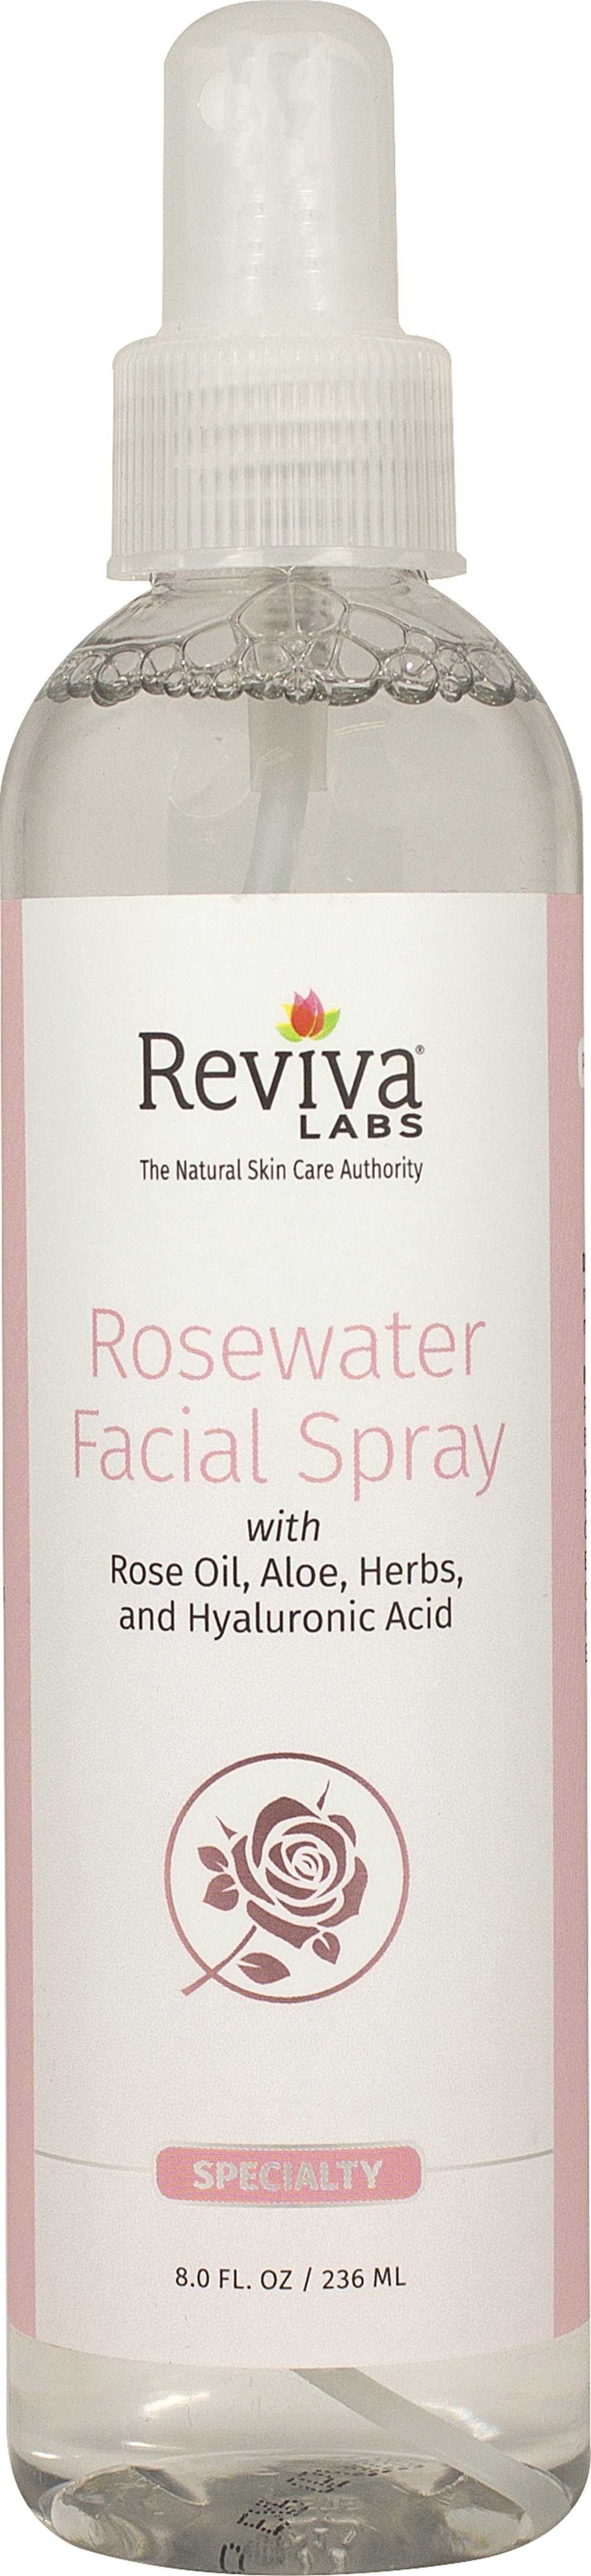 Rosewater Facial Spray <p><strong>From the Manufacturer's Label</strong></p><p>Rosewater Facial Spray is manufactured by Reviva® Labs.</p><p>- No Animal Ingredients</p><p>- No Animal Testing</p> 8 oz Spray  $6.99